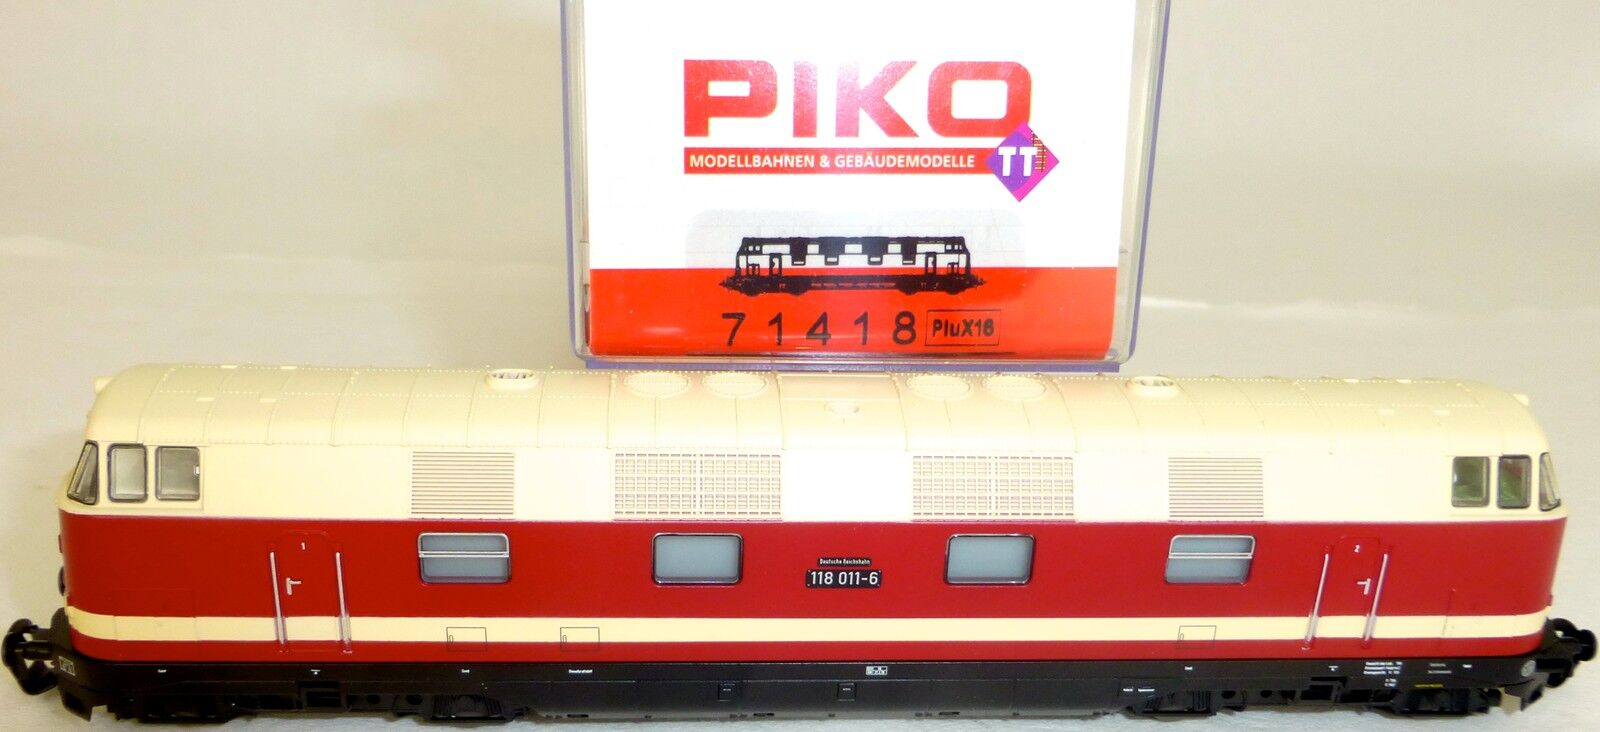 Br 118 011 6 DIESEL DR ep4 DSS PIKO 71418 TT 1:120 OVP NUOVO Serie Speciale µ *